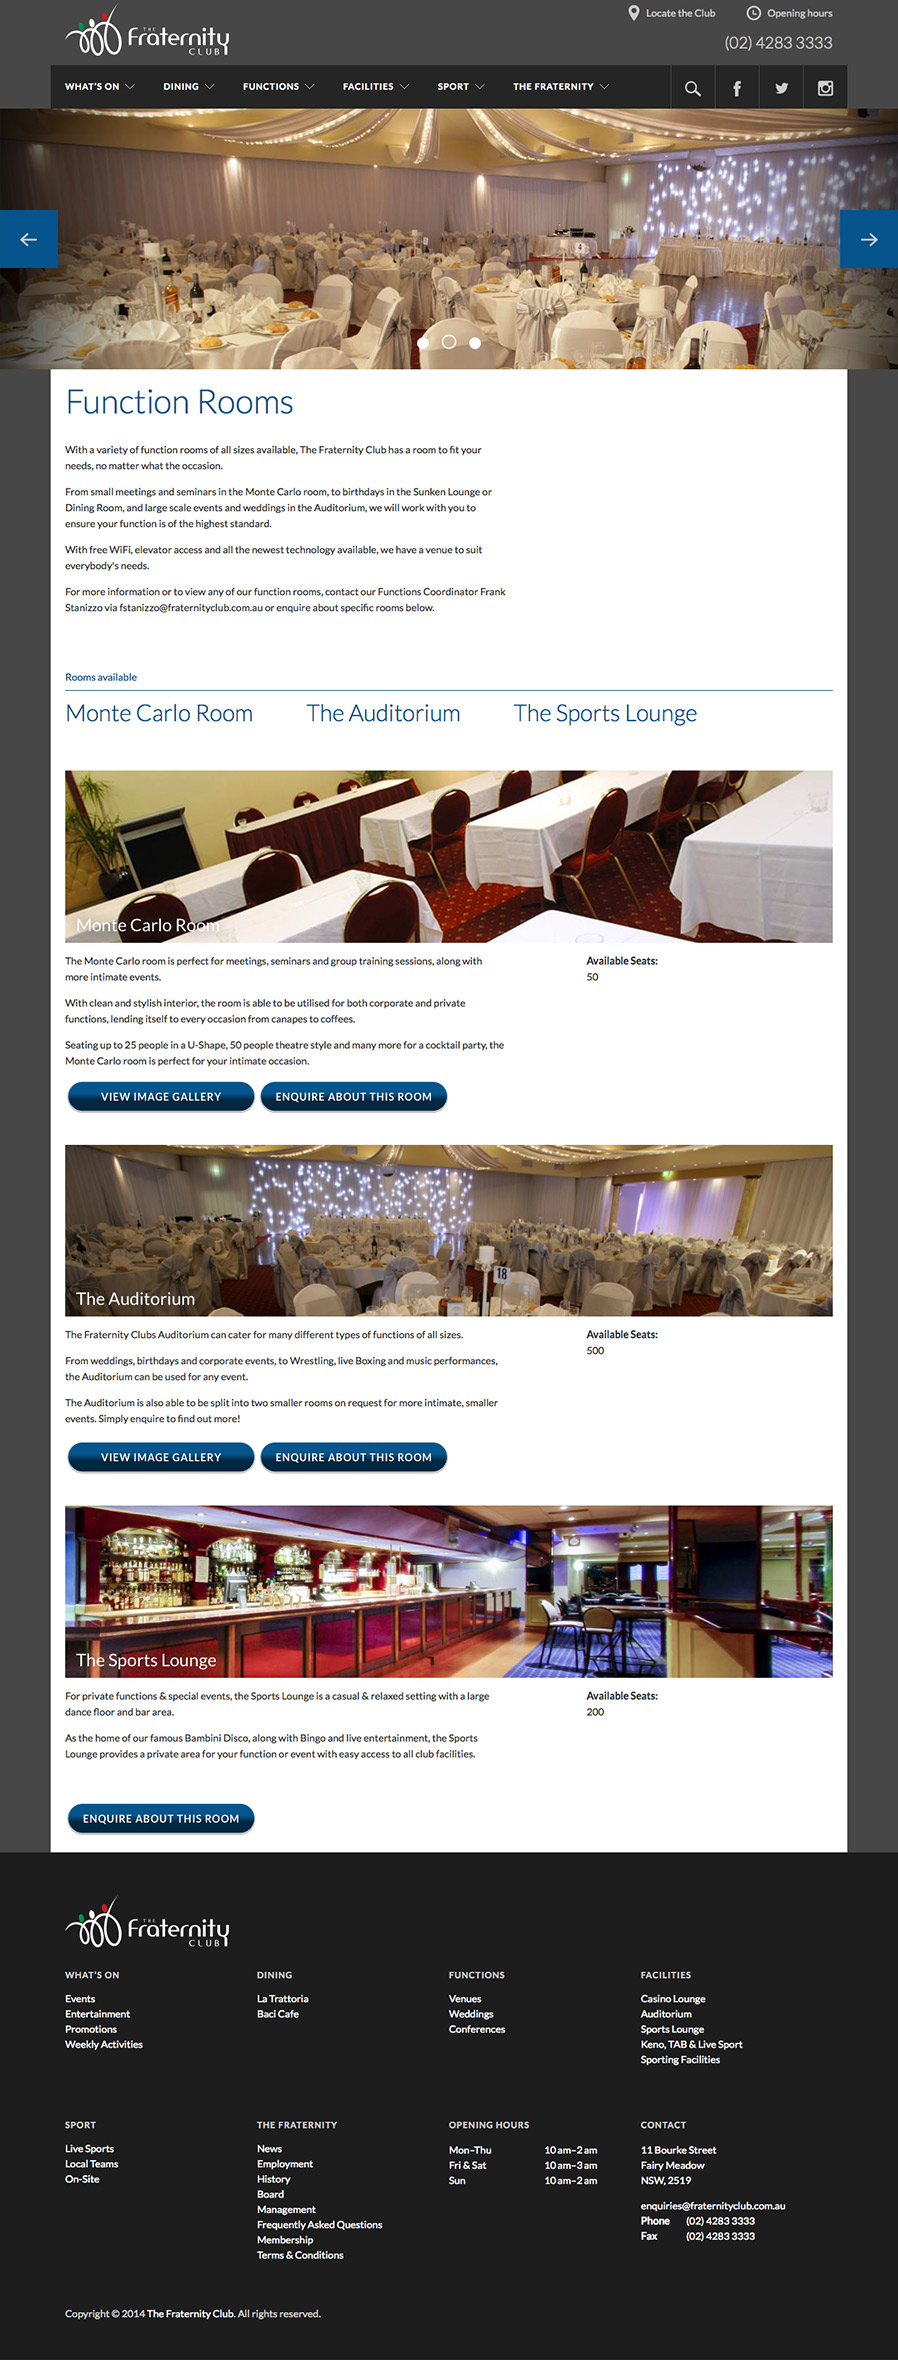 The Fraternity Club function rooms page